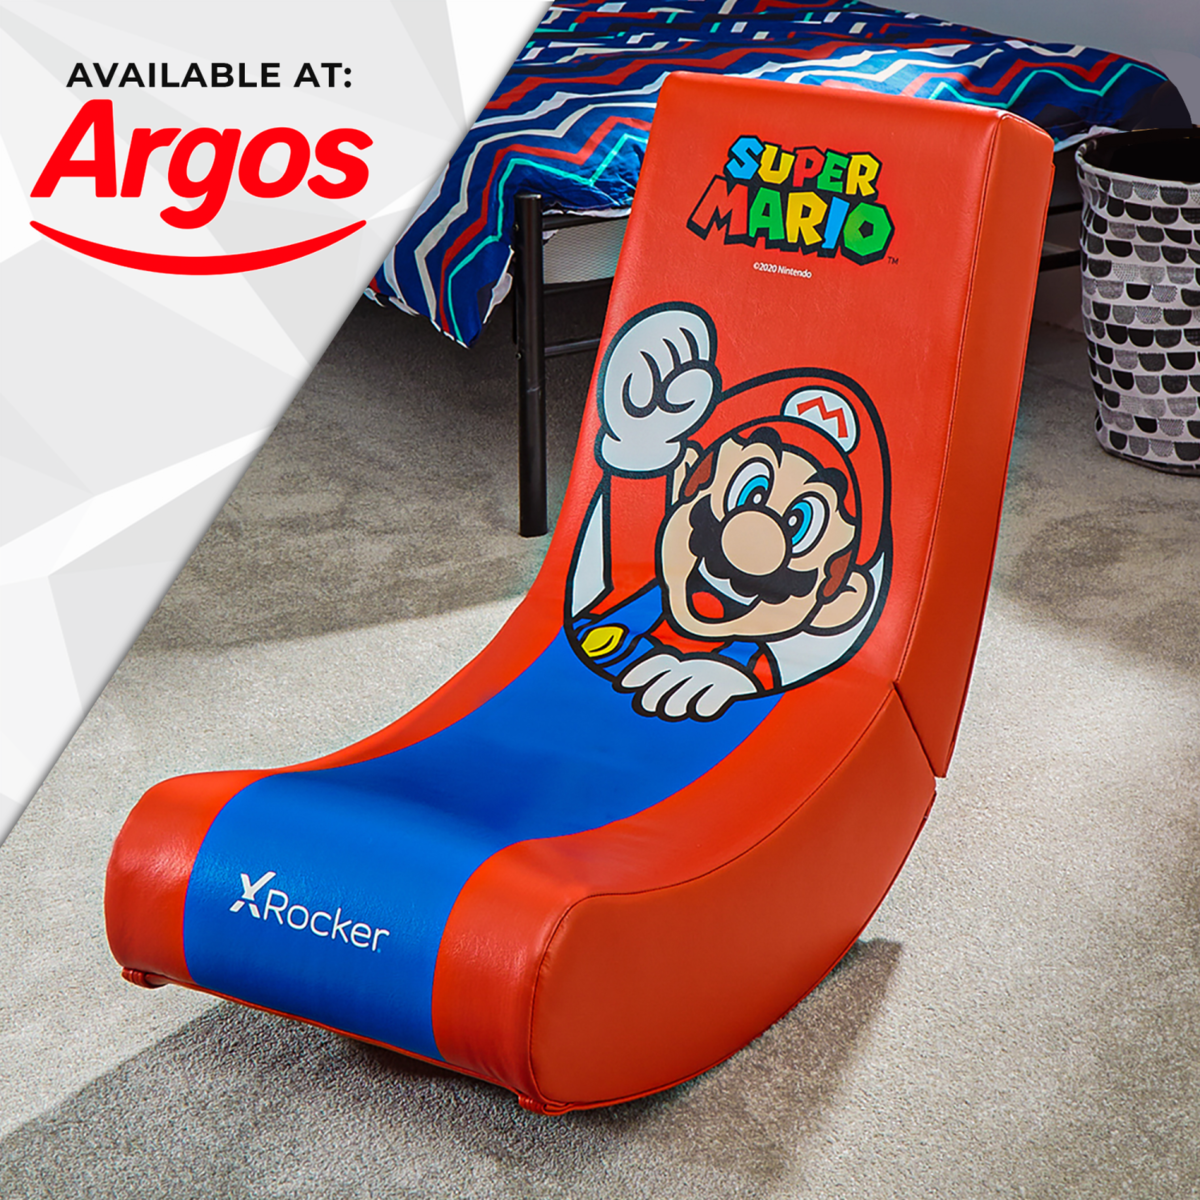 Nintendo Super Mario X Rocker Gaming Chair Floor Rocker- Mario Spotlight Edition available at Argos